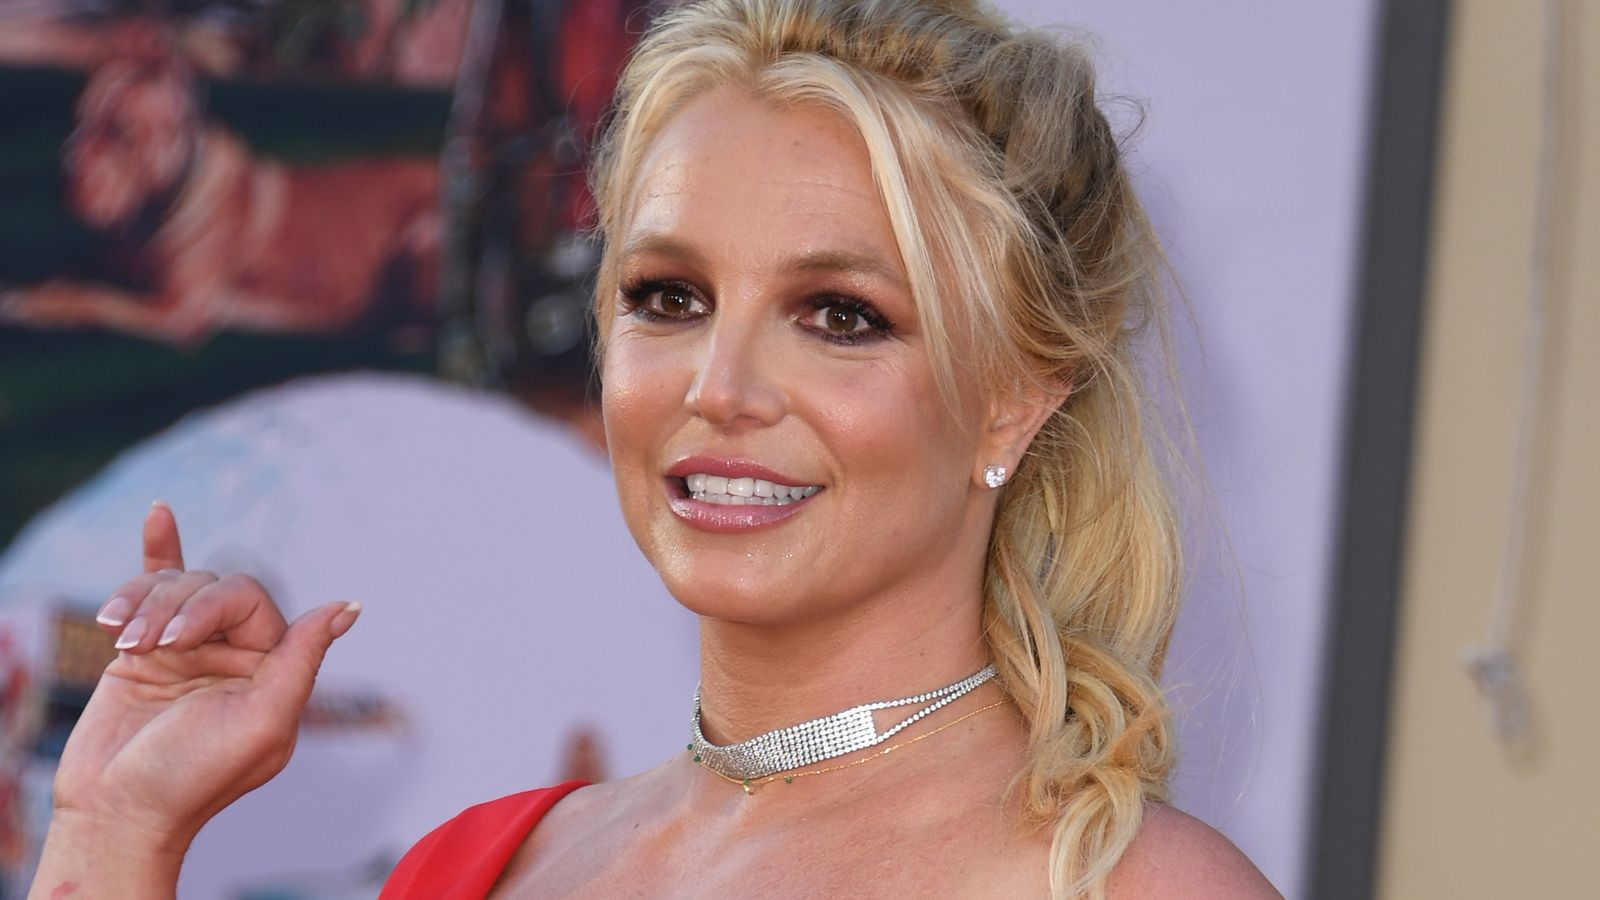 Britney Spears: 'I want to show you what I really look like'